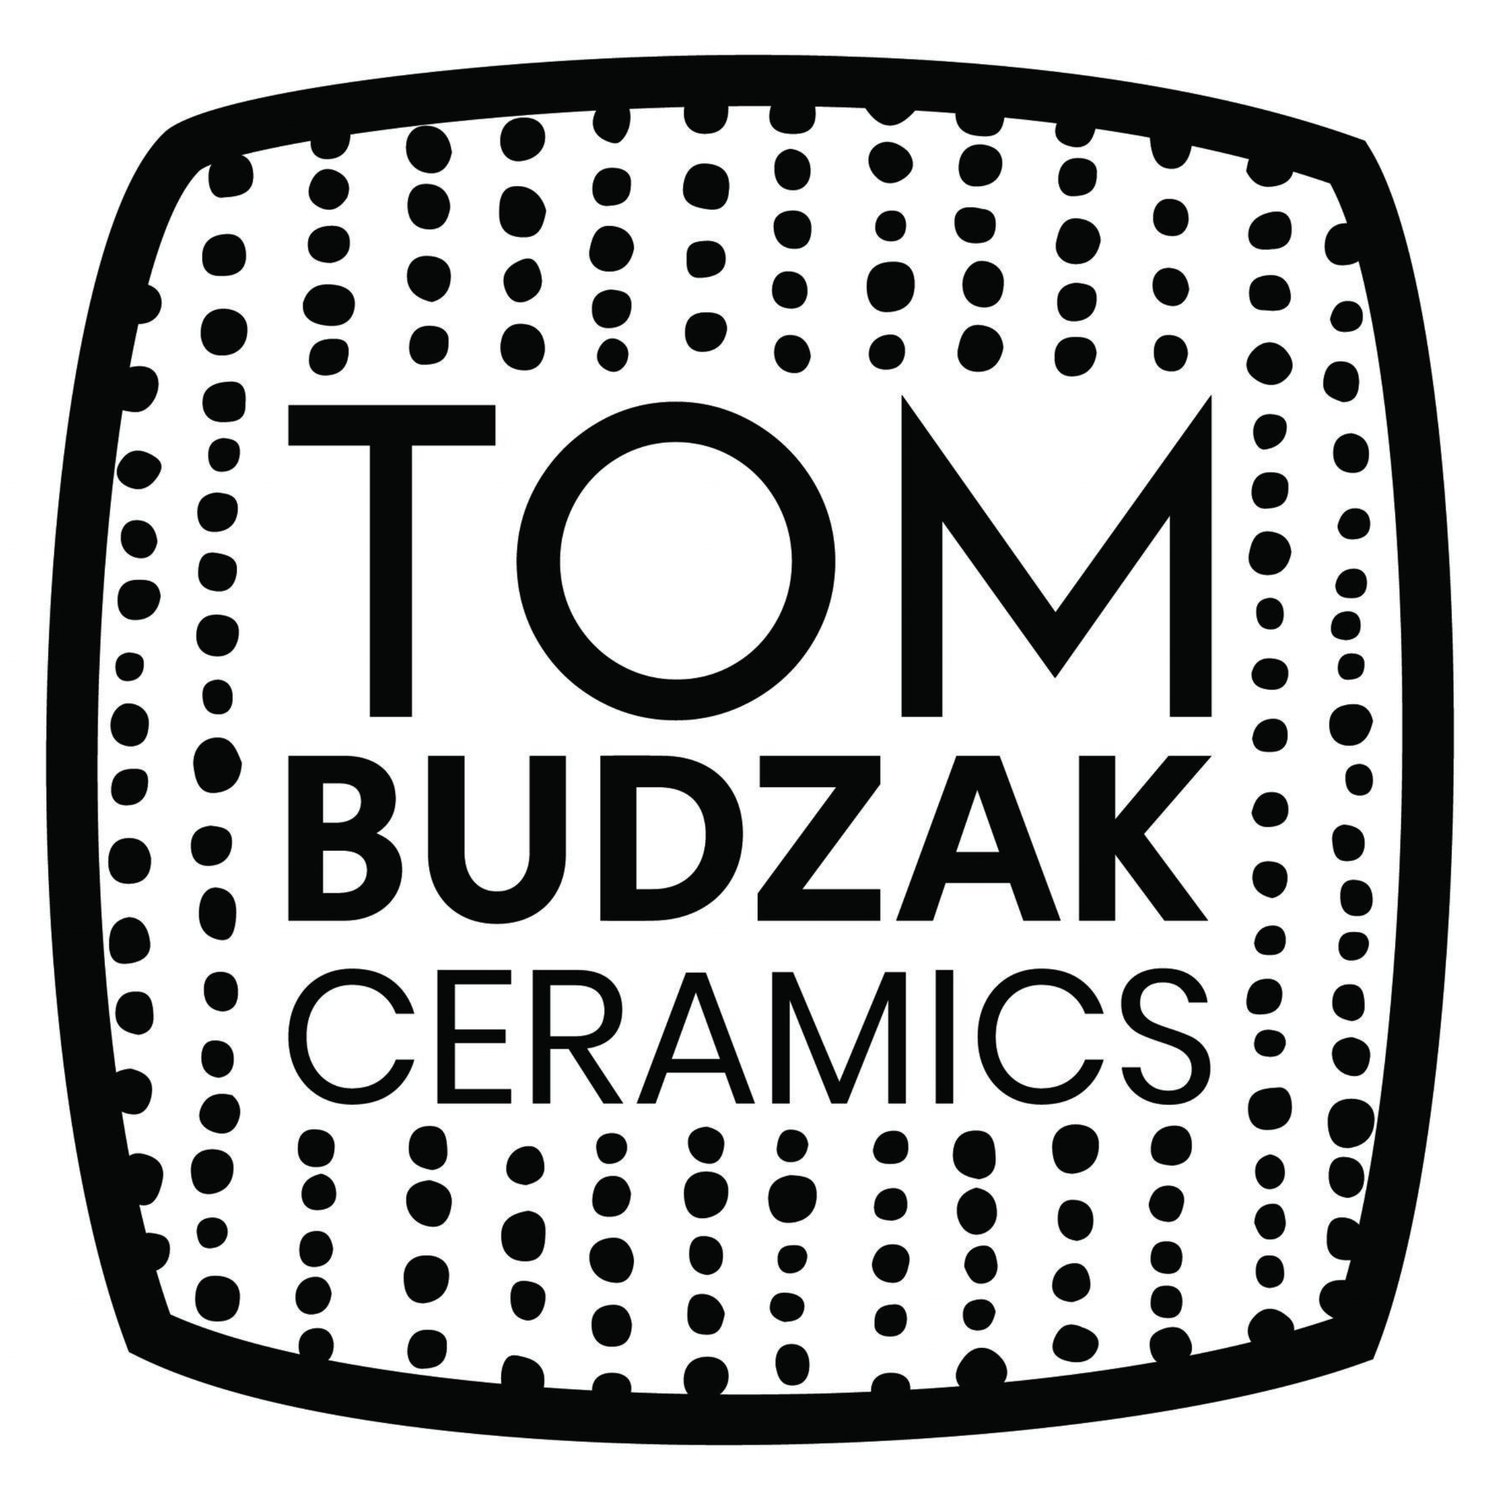 Tom Budzak Ceramics